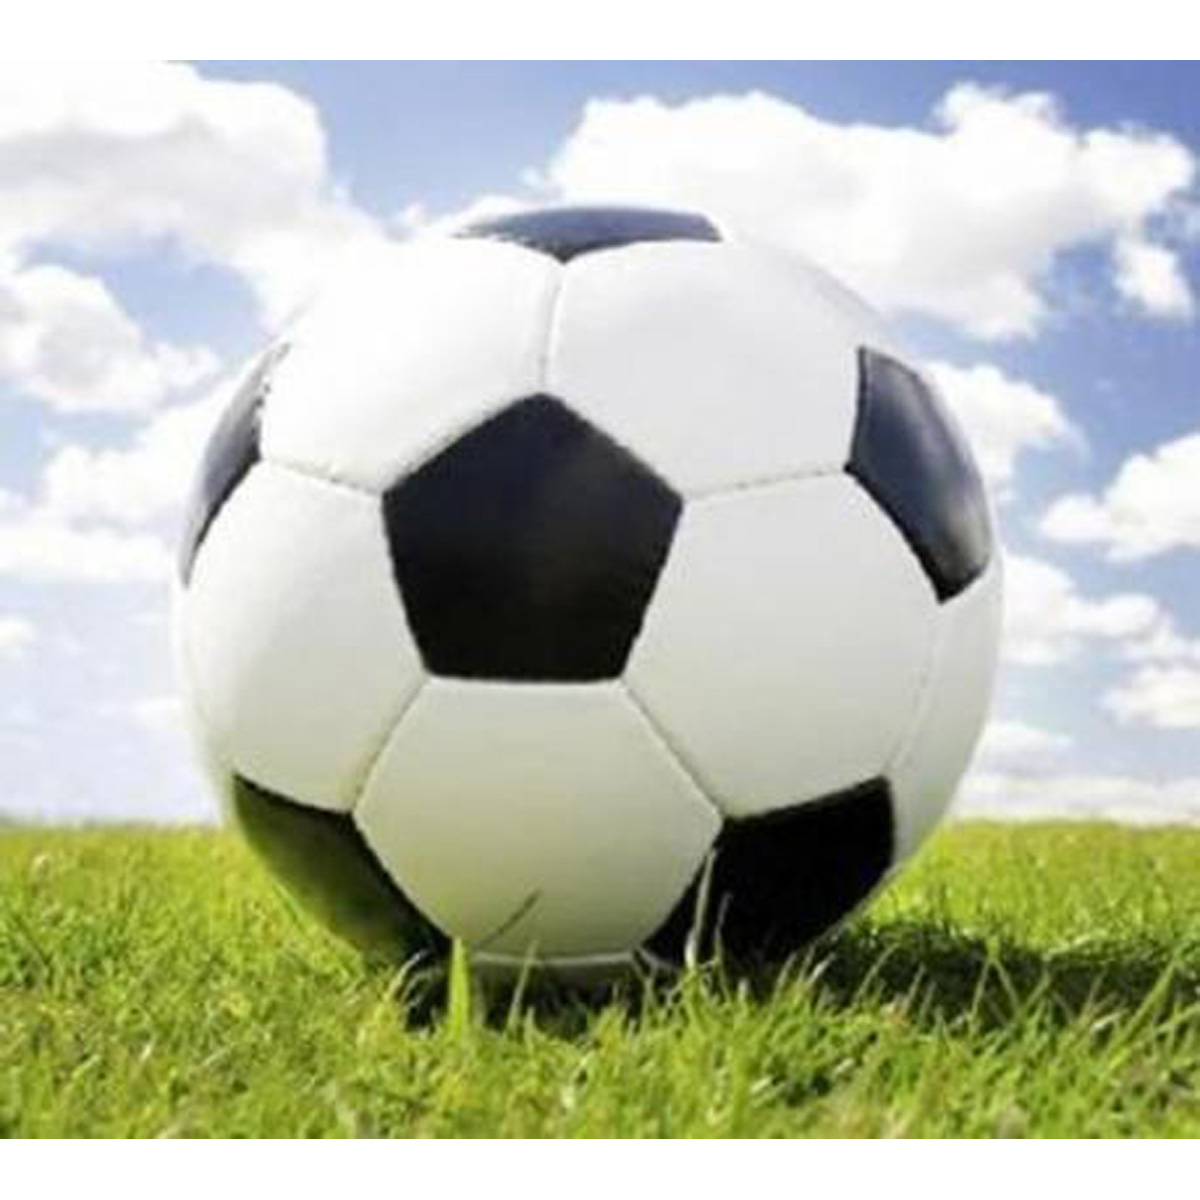 FOOTBALL: Oxon pipped in semi-final